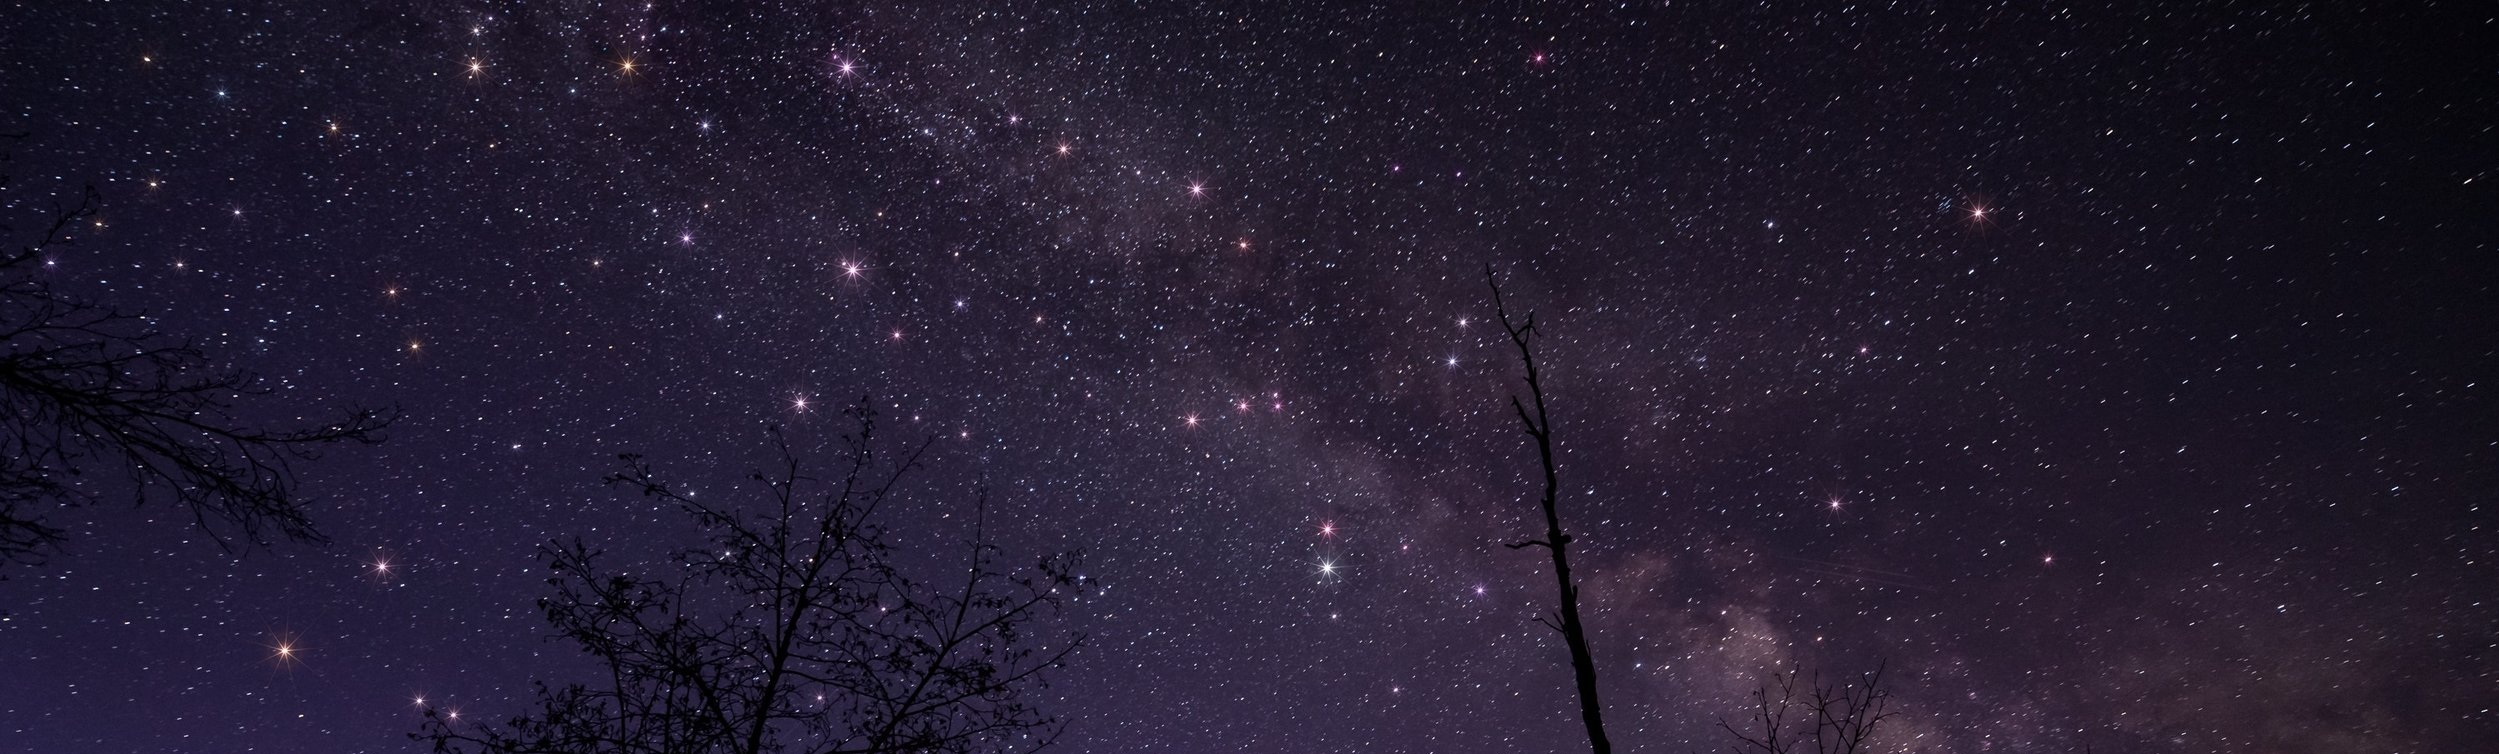 astronomy-astrophotography-beautiful-view-1542493.jpg